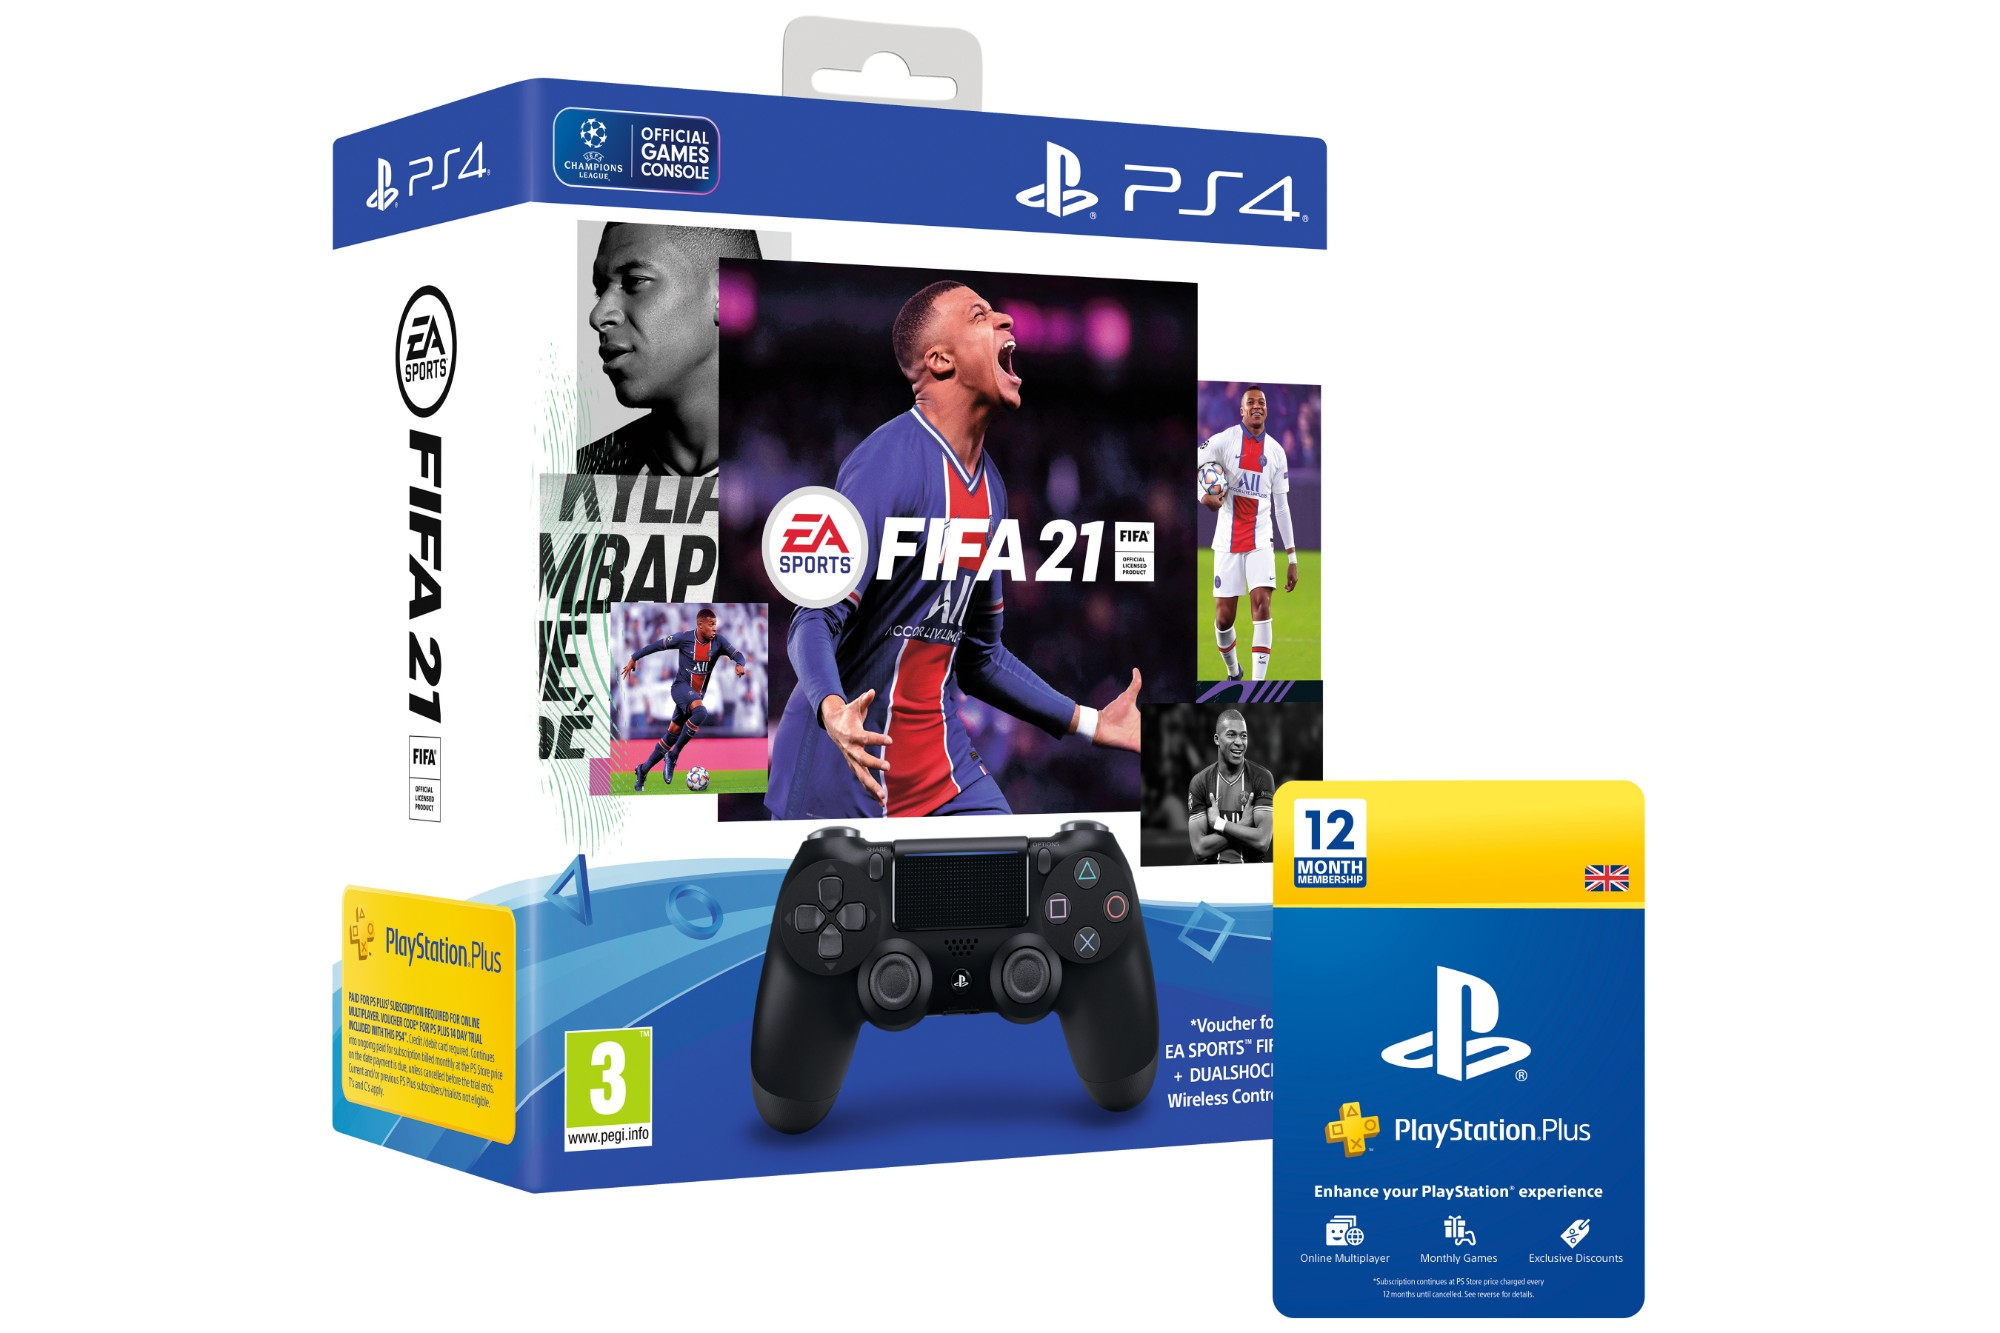 Sony PS4 DualShock Controller with FIFA 2021 Digital Download & PSN Plus Card 365 Days - Black